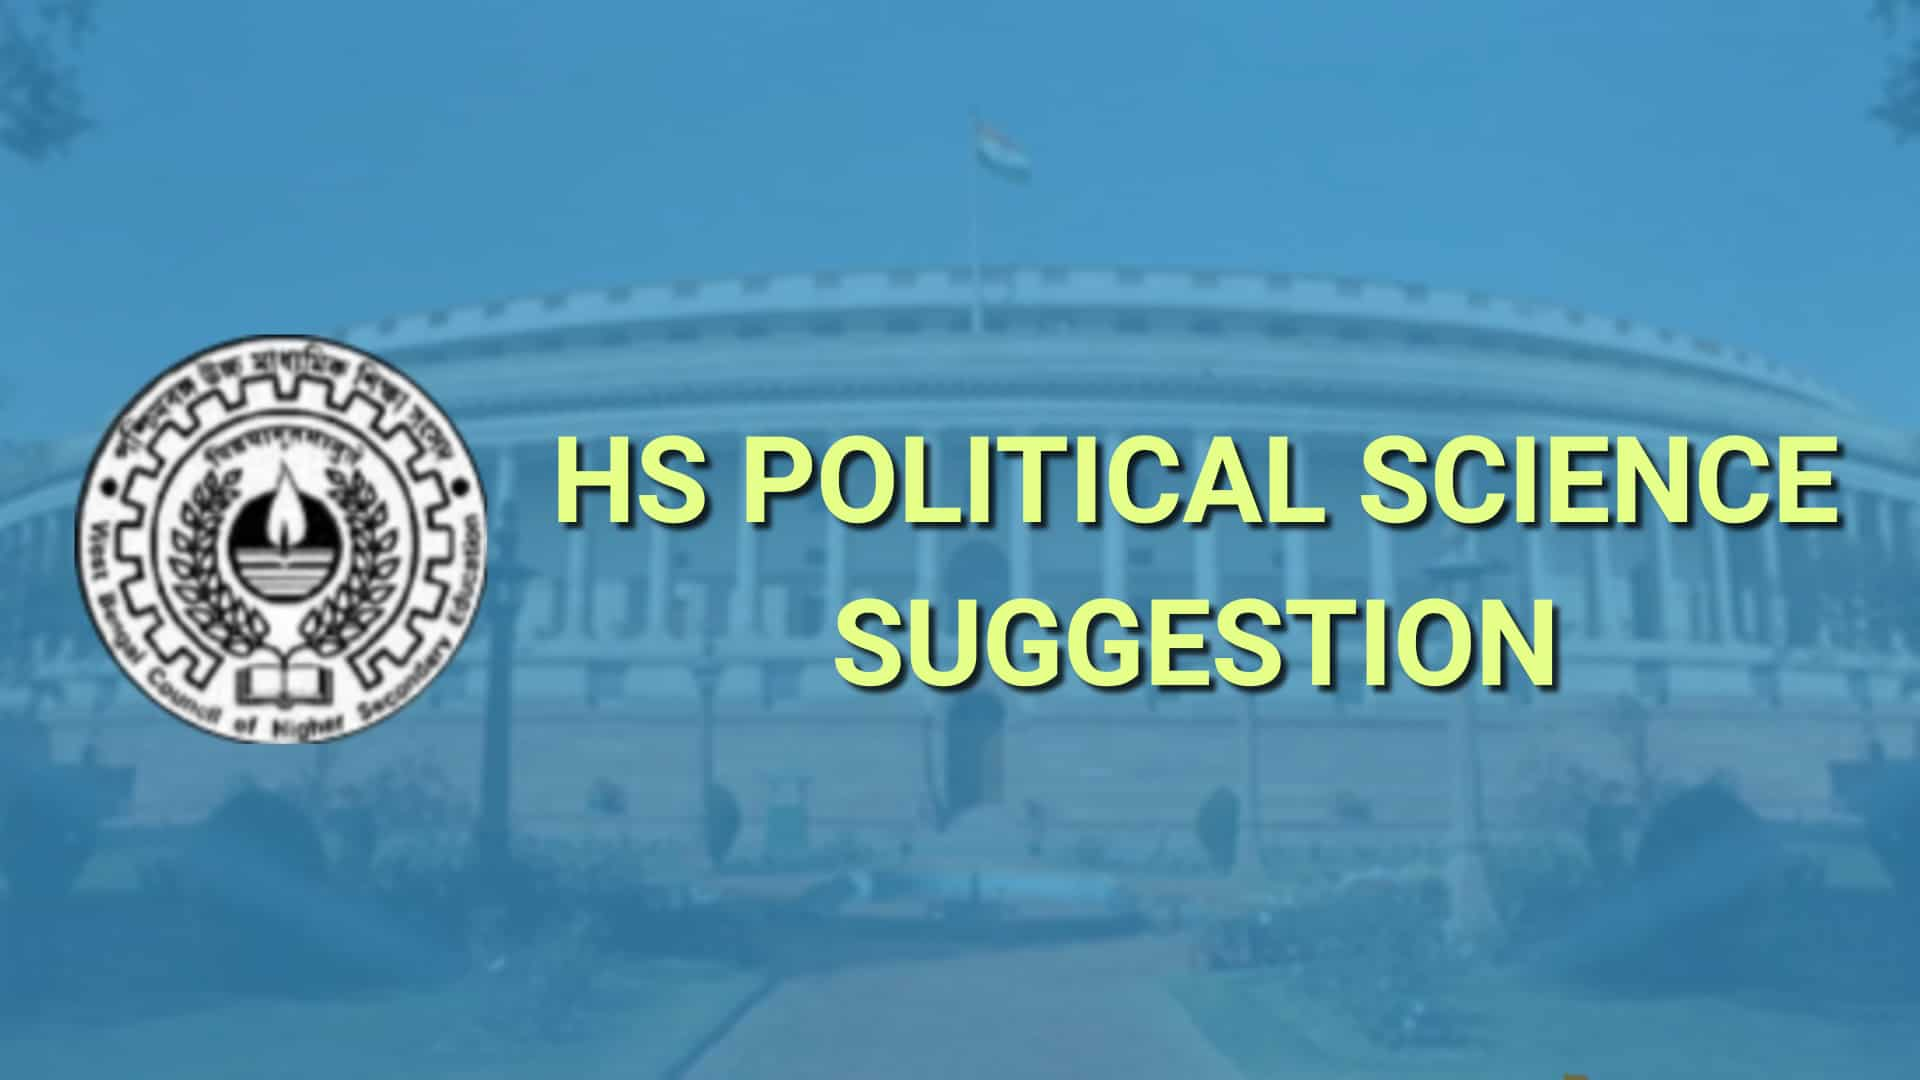 HS Political science suggestion 2022